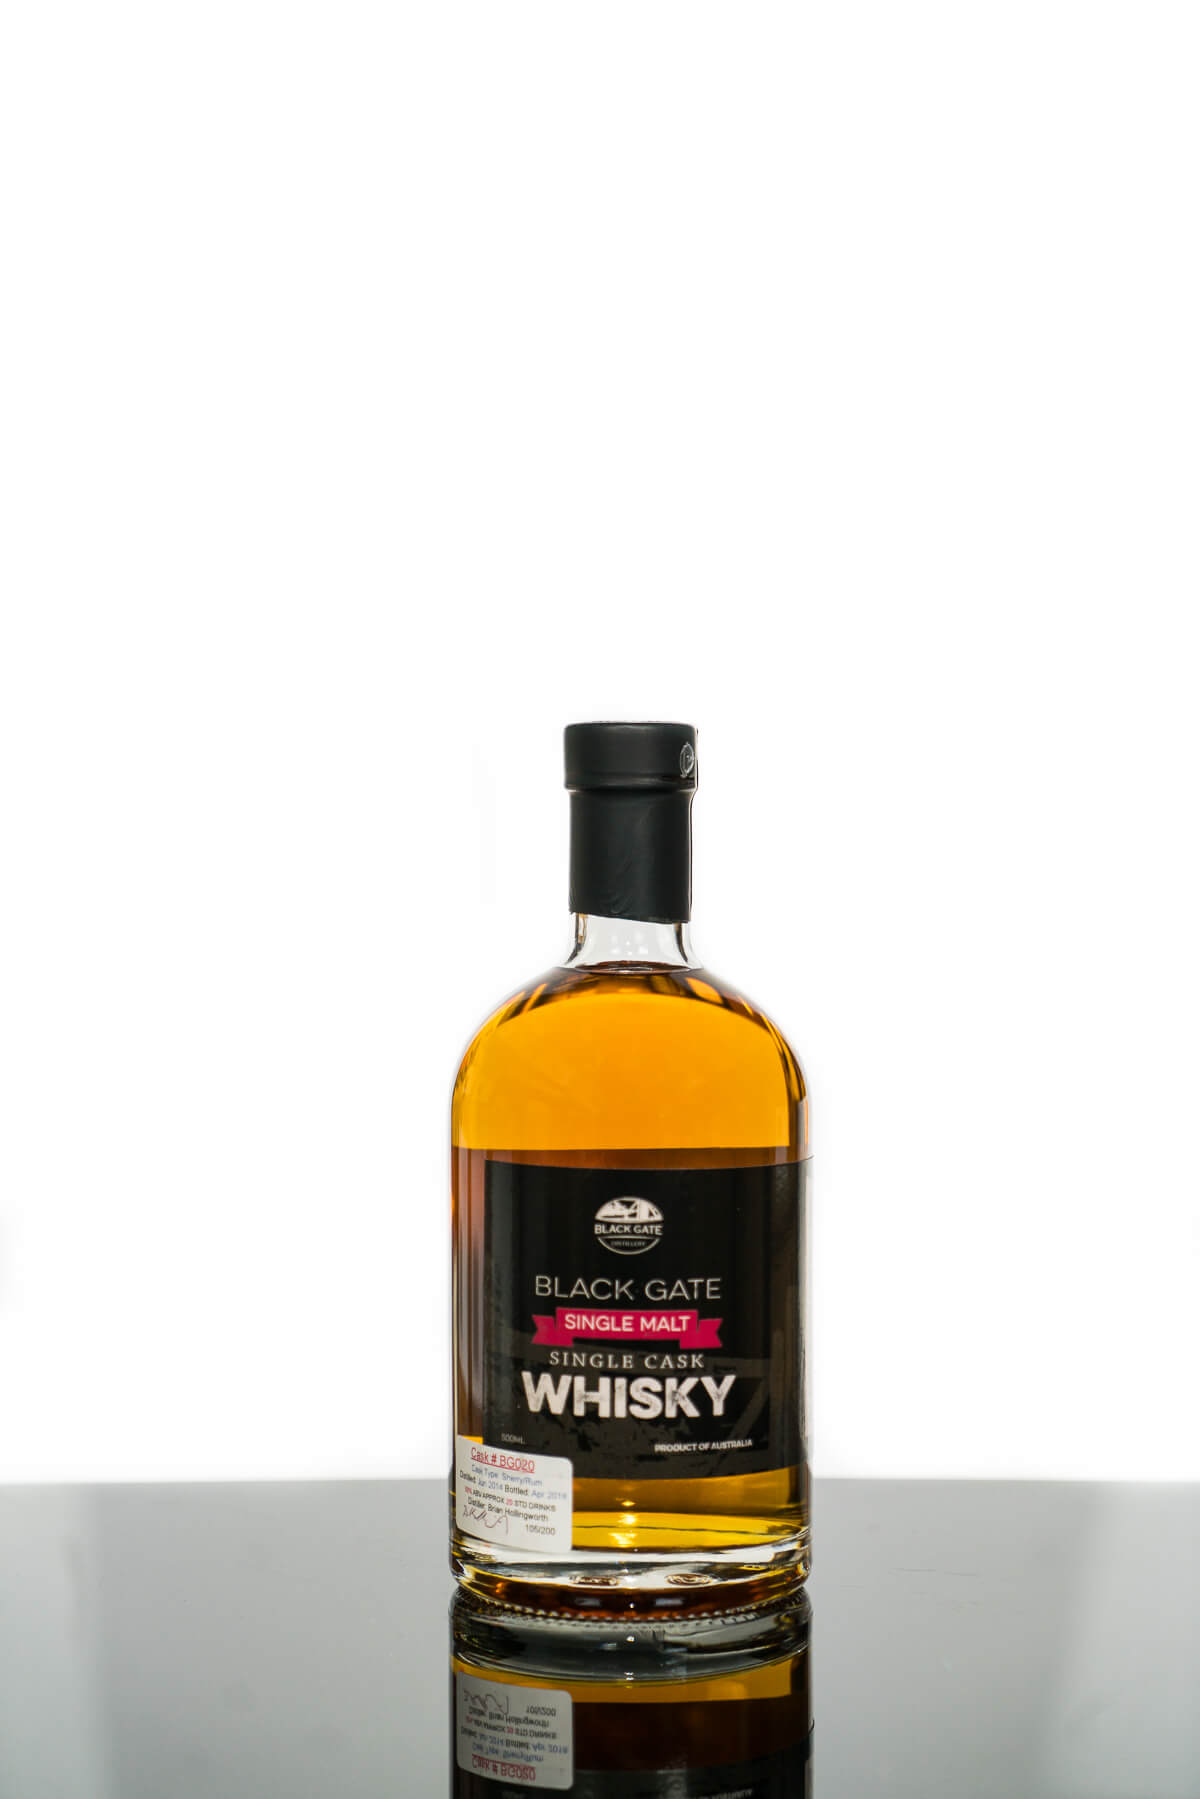 Black Gate Single Cask #BG020 Single Malt Australian Single Malt Whisky (500ml)